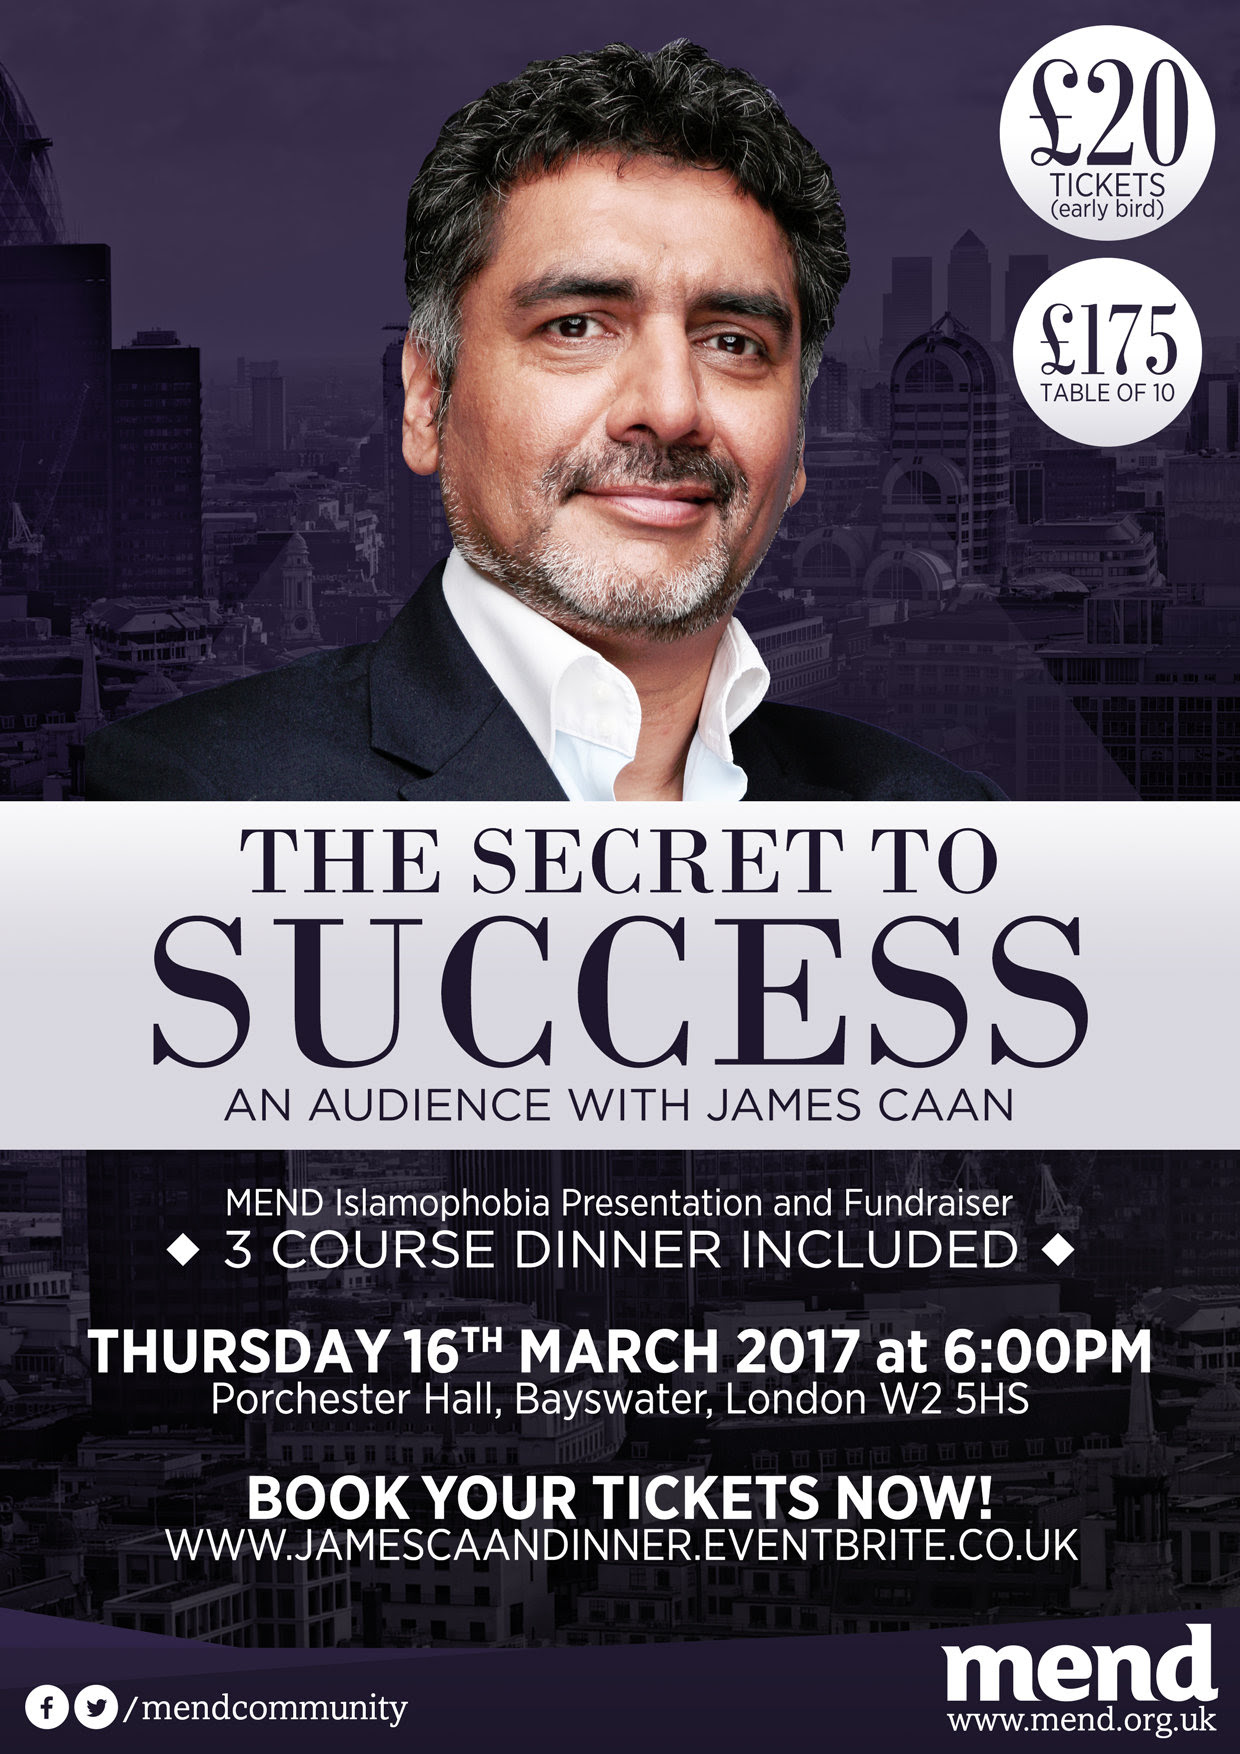 The Secret to Success: an Evening with James Caan (Mend)